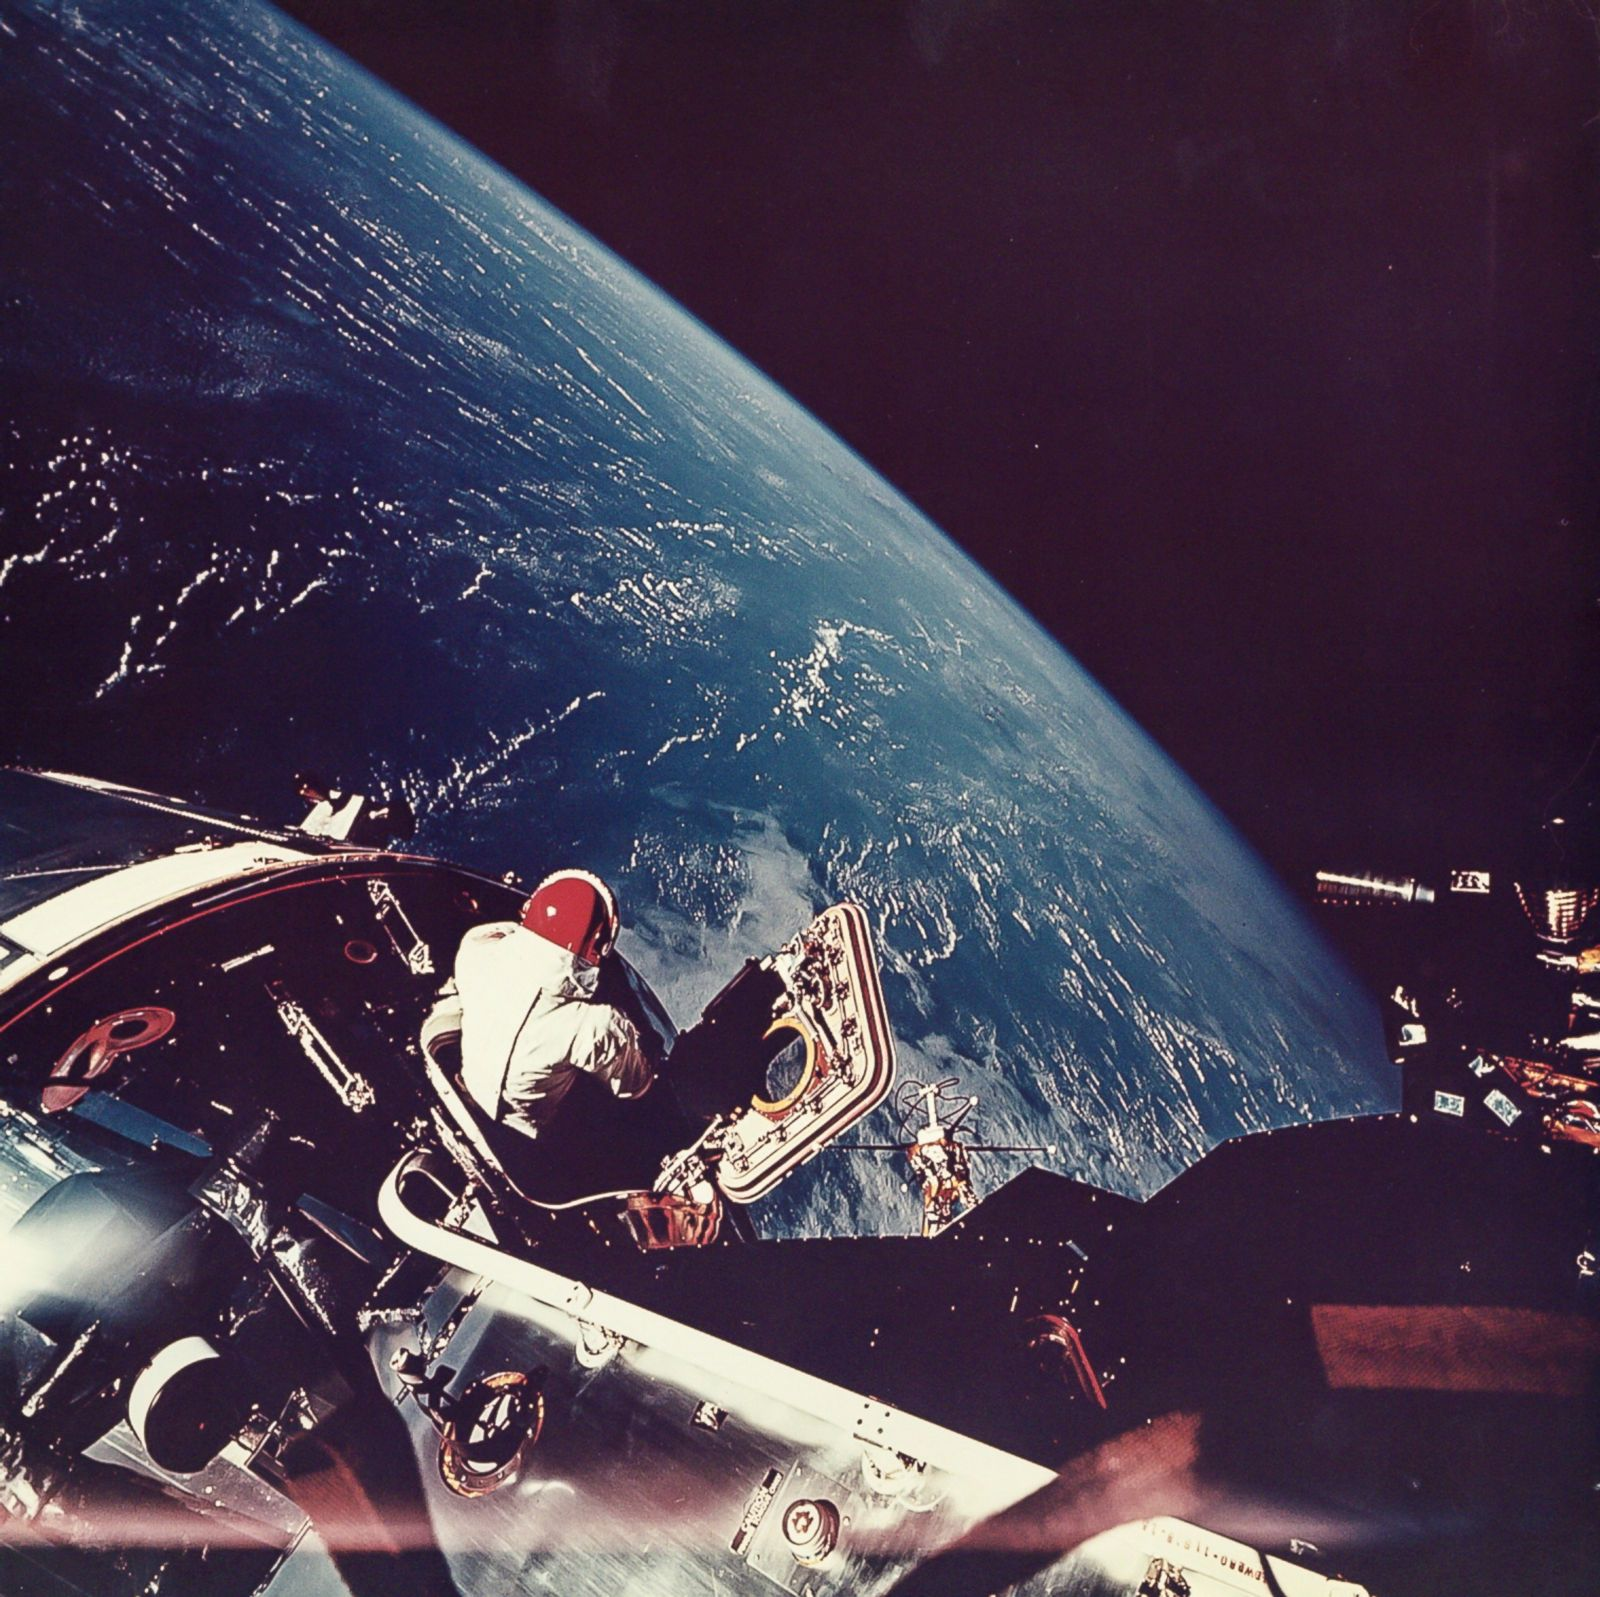 Vintage NASA Photos Up for Auction Photos  Image #1  ABC